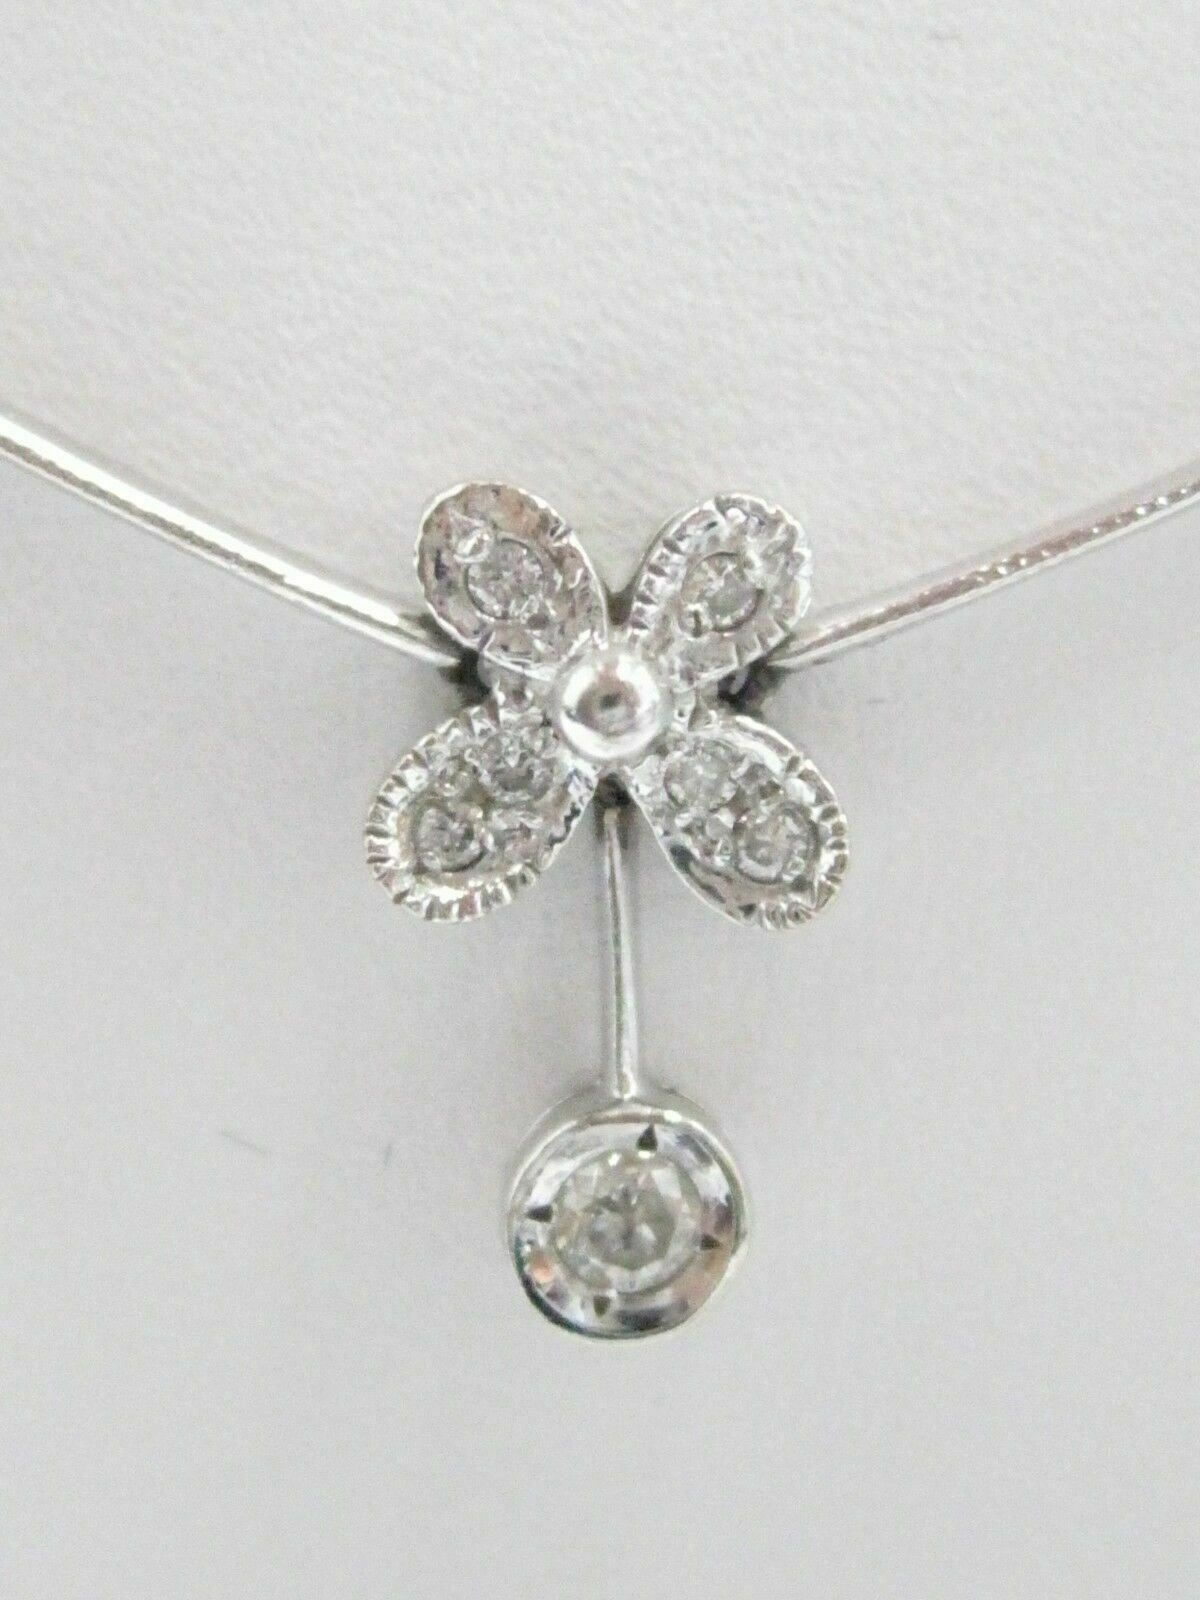 .85 TCW Round Brilliants Diamond Flower Pendant Necklace G SI1 14k White Gold